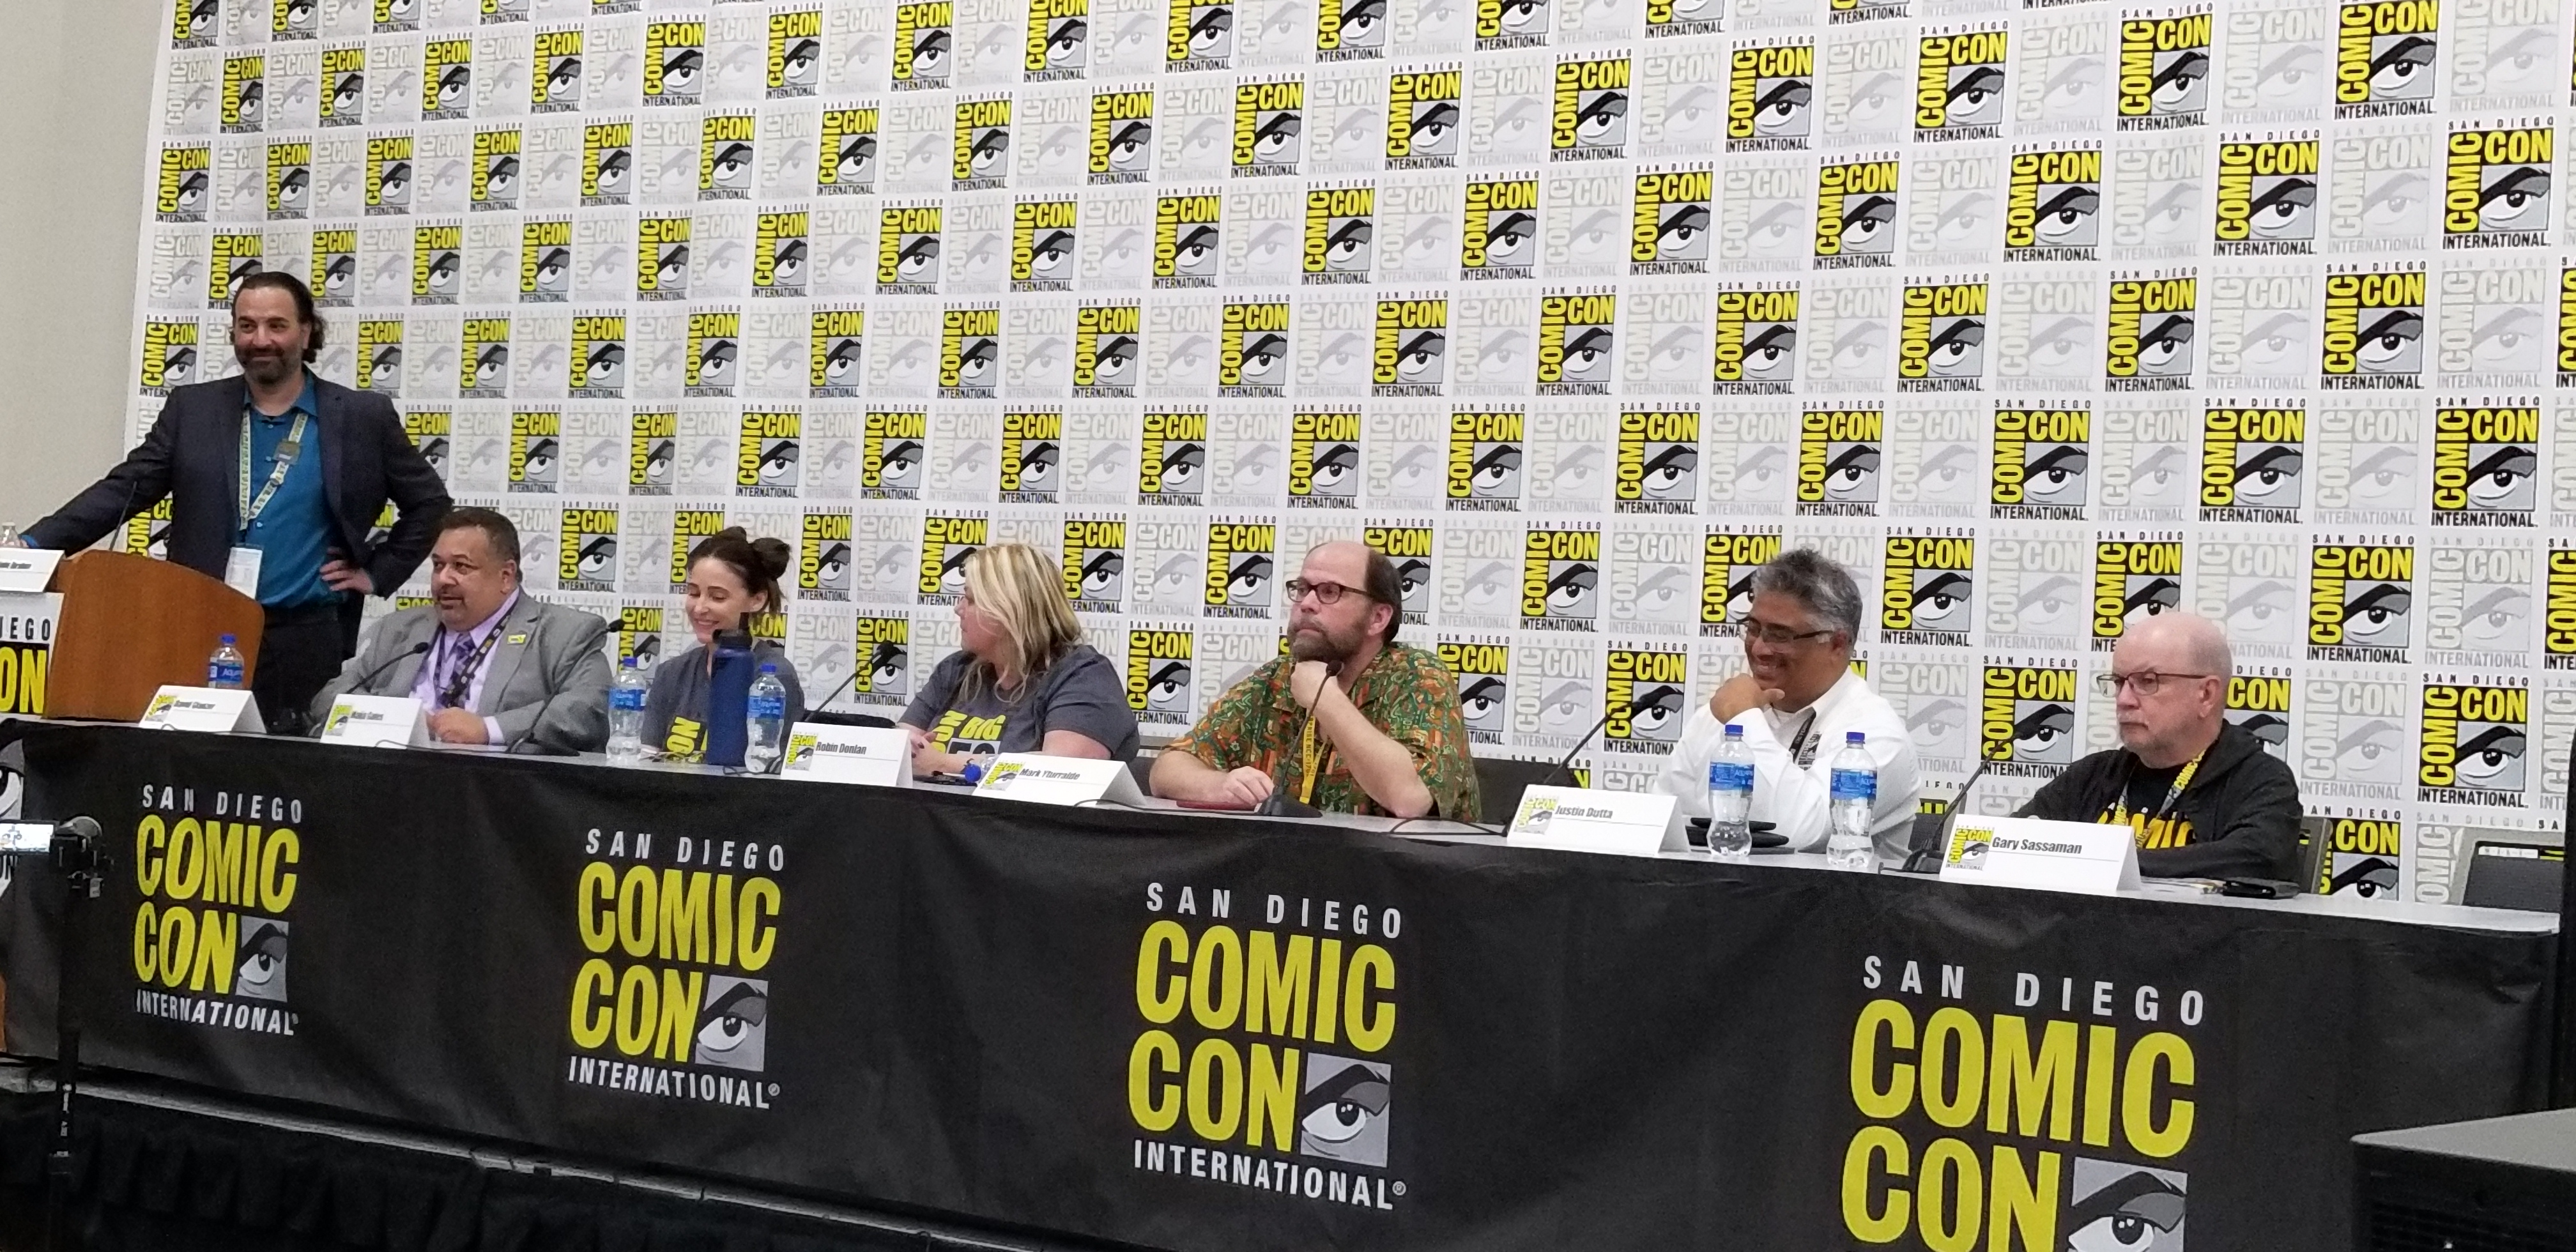 """SDCC '19: """"Comic-Con Now"""" panel highlights a team effort to keep the con moving & growing - The Beat"""